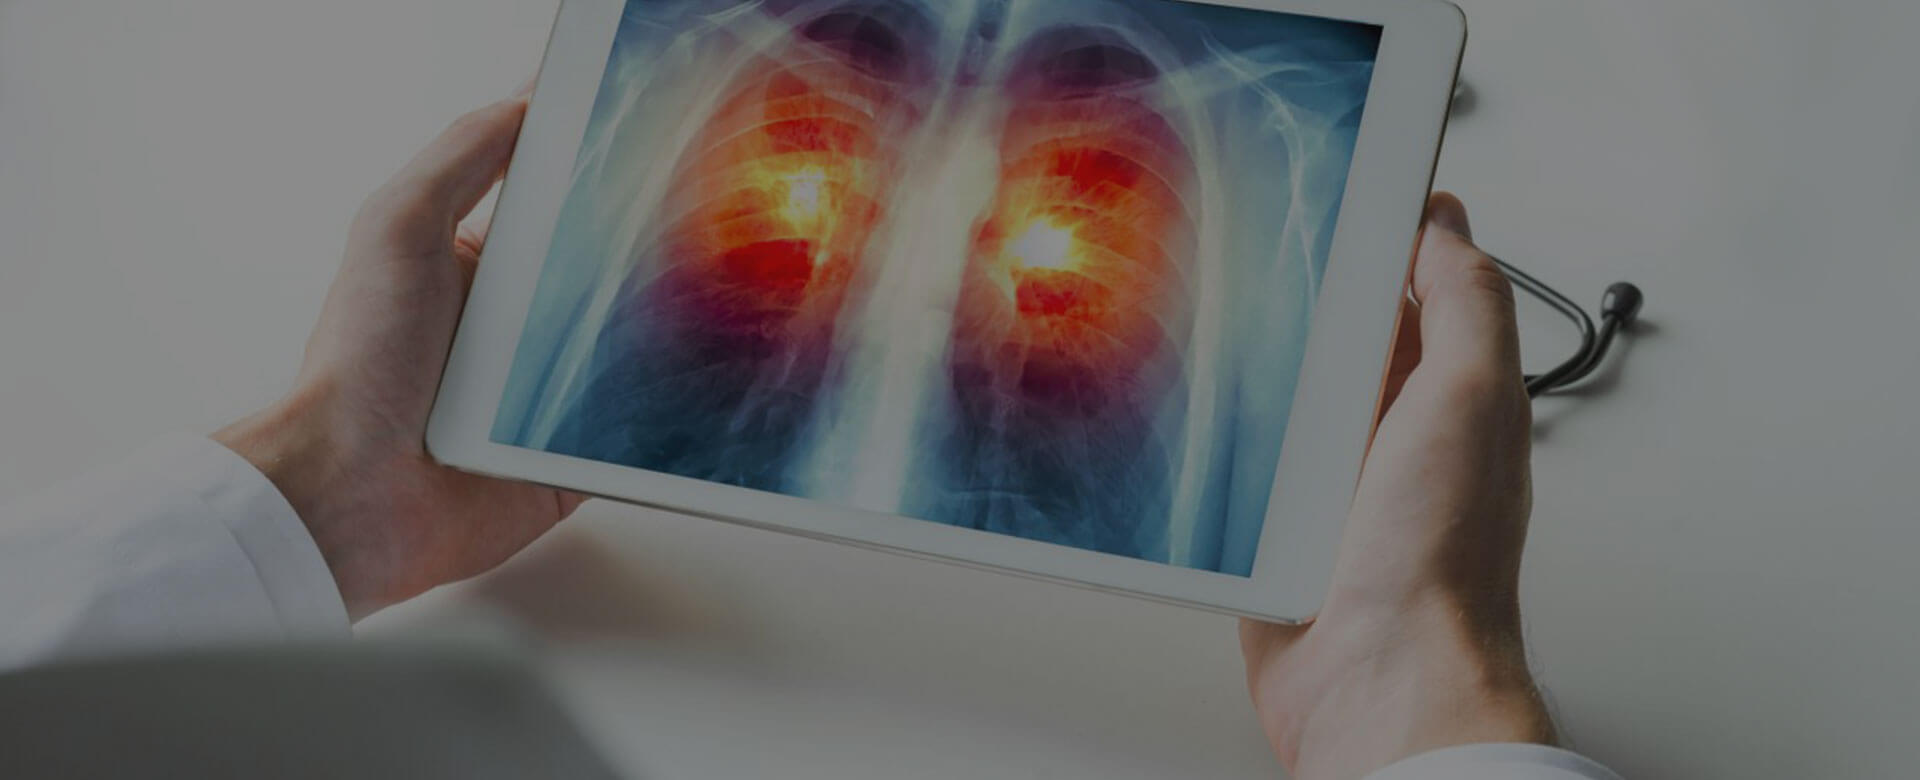 Lung cancer: smoke leaves traces in healthy cells